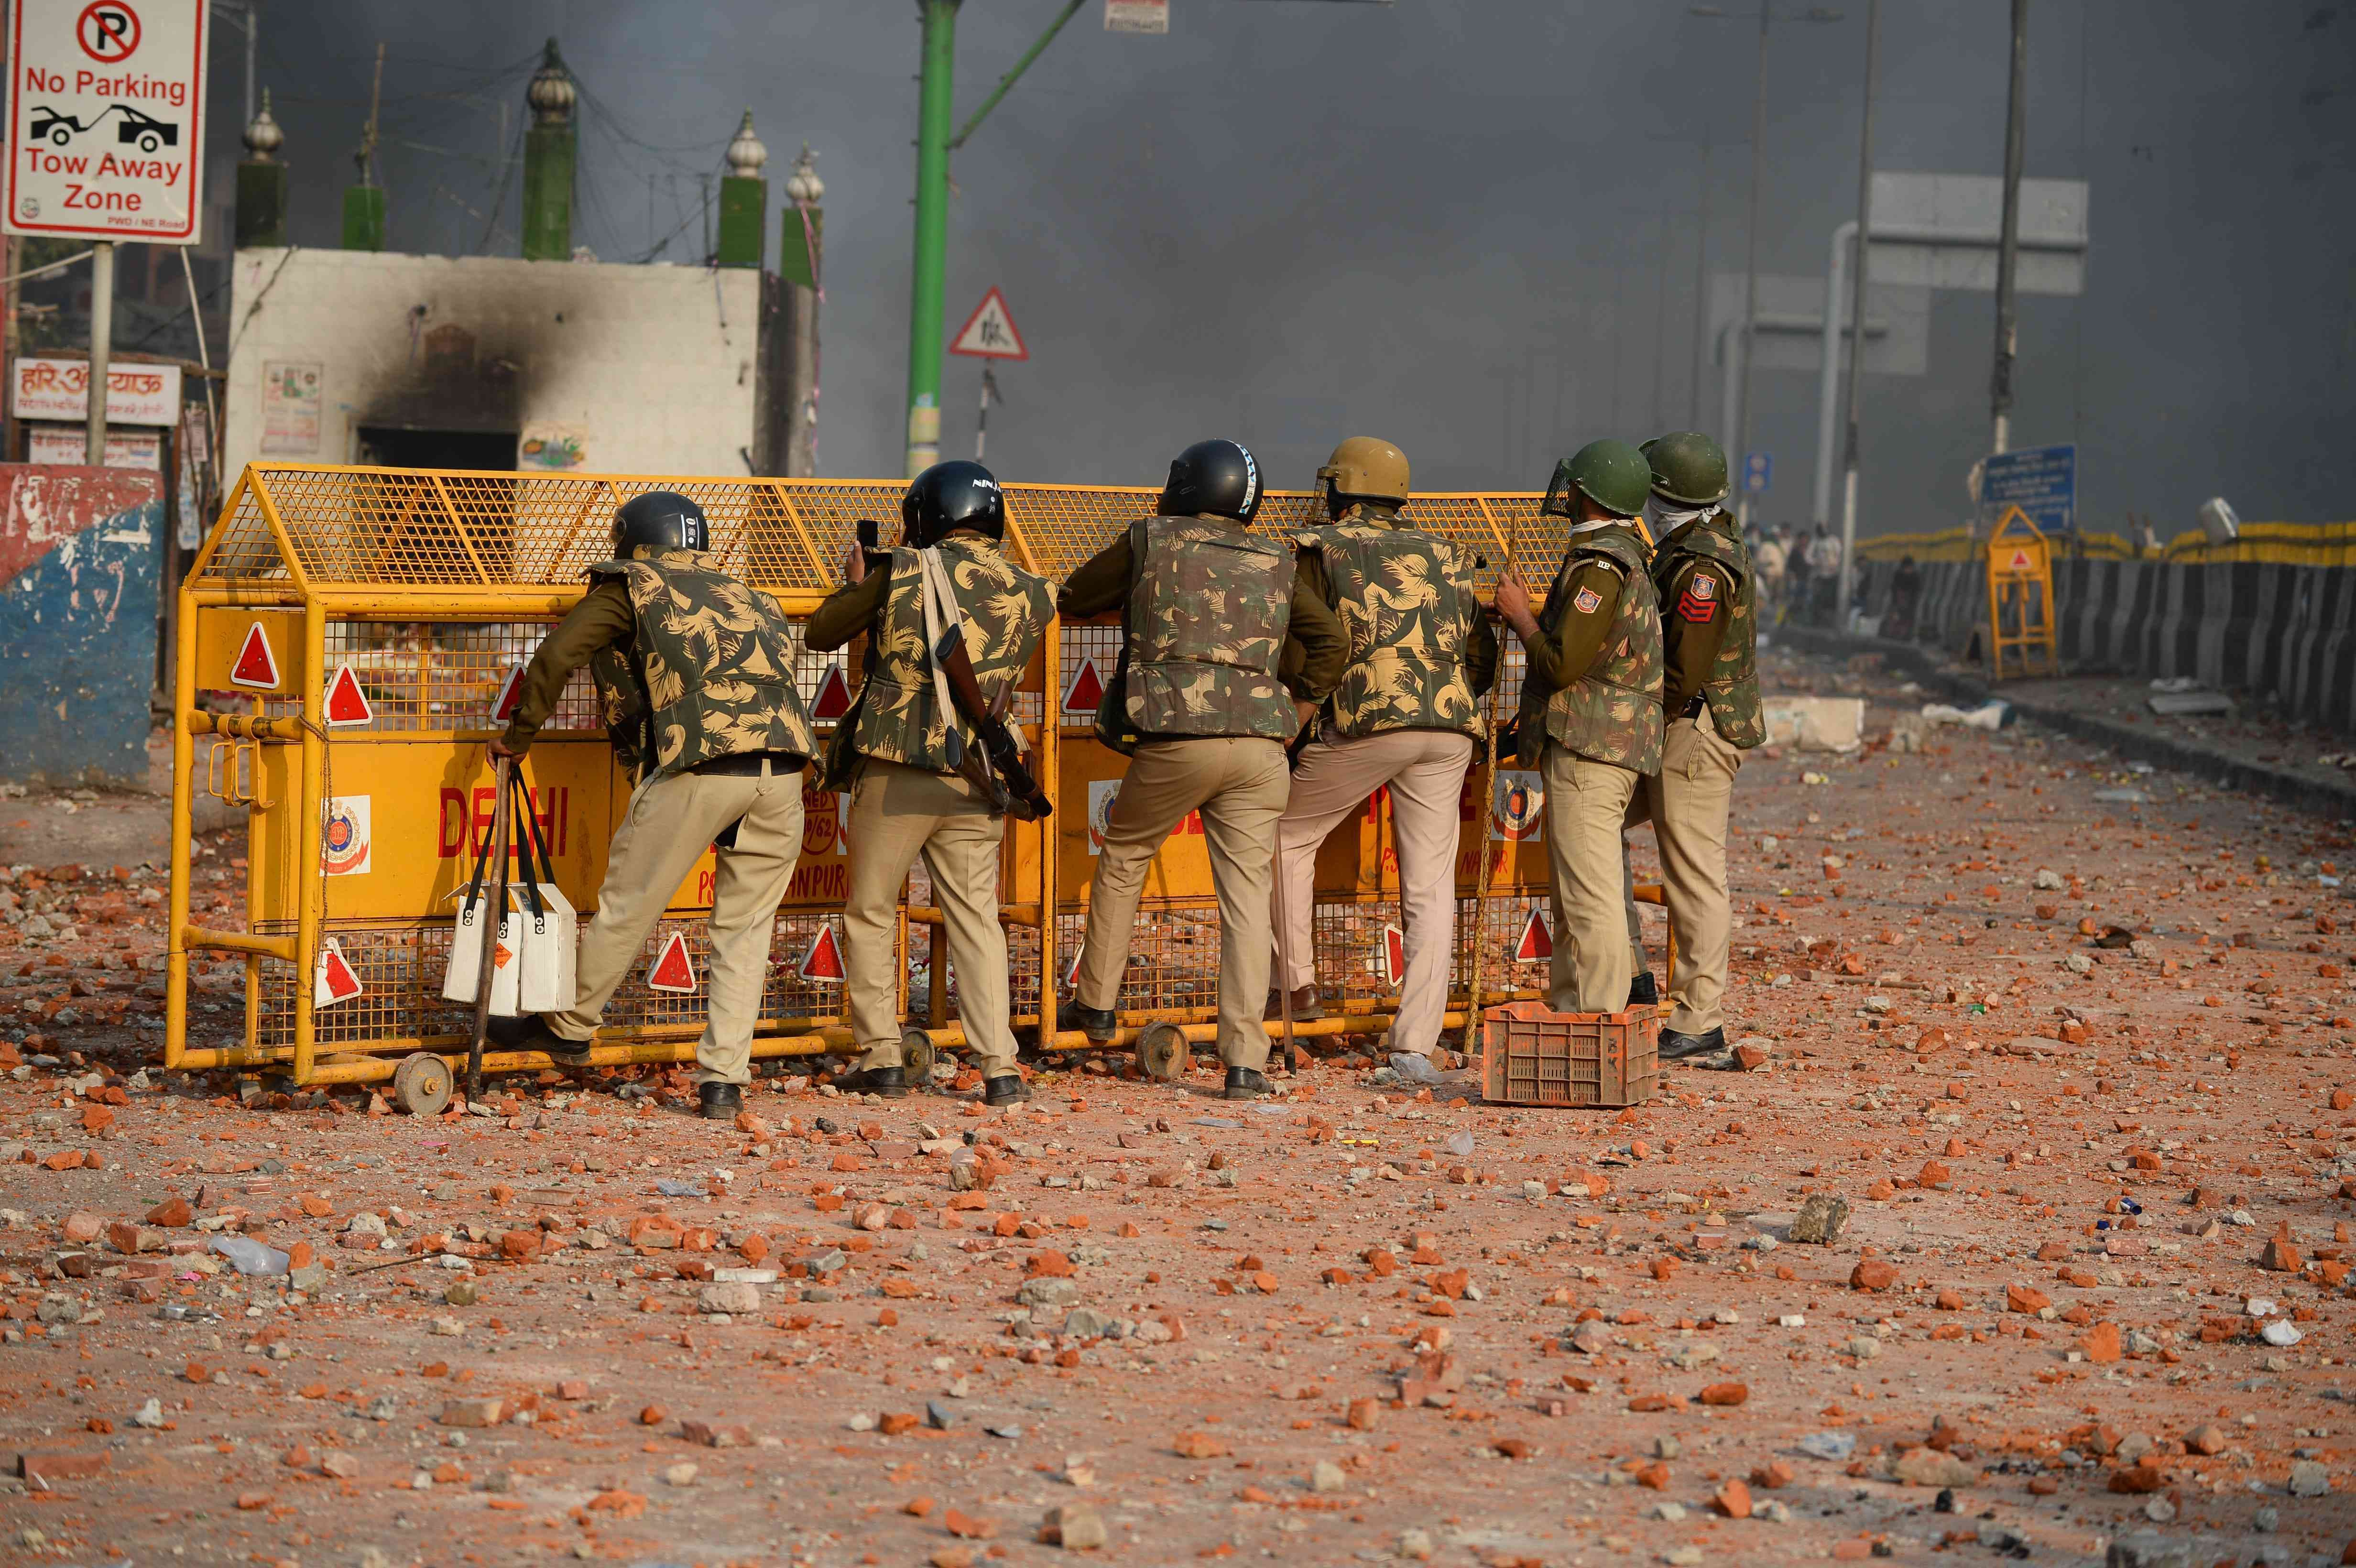 Policemen shelter behind a barrier following clashes in the Bhajanpura area of New Delhi on February 24. — AFP